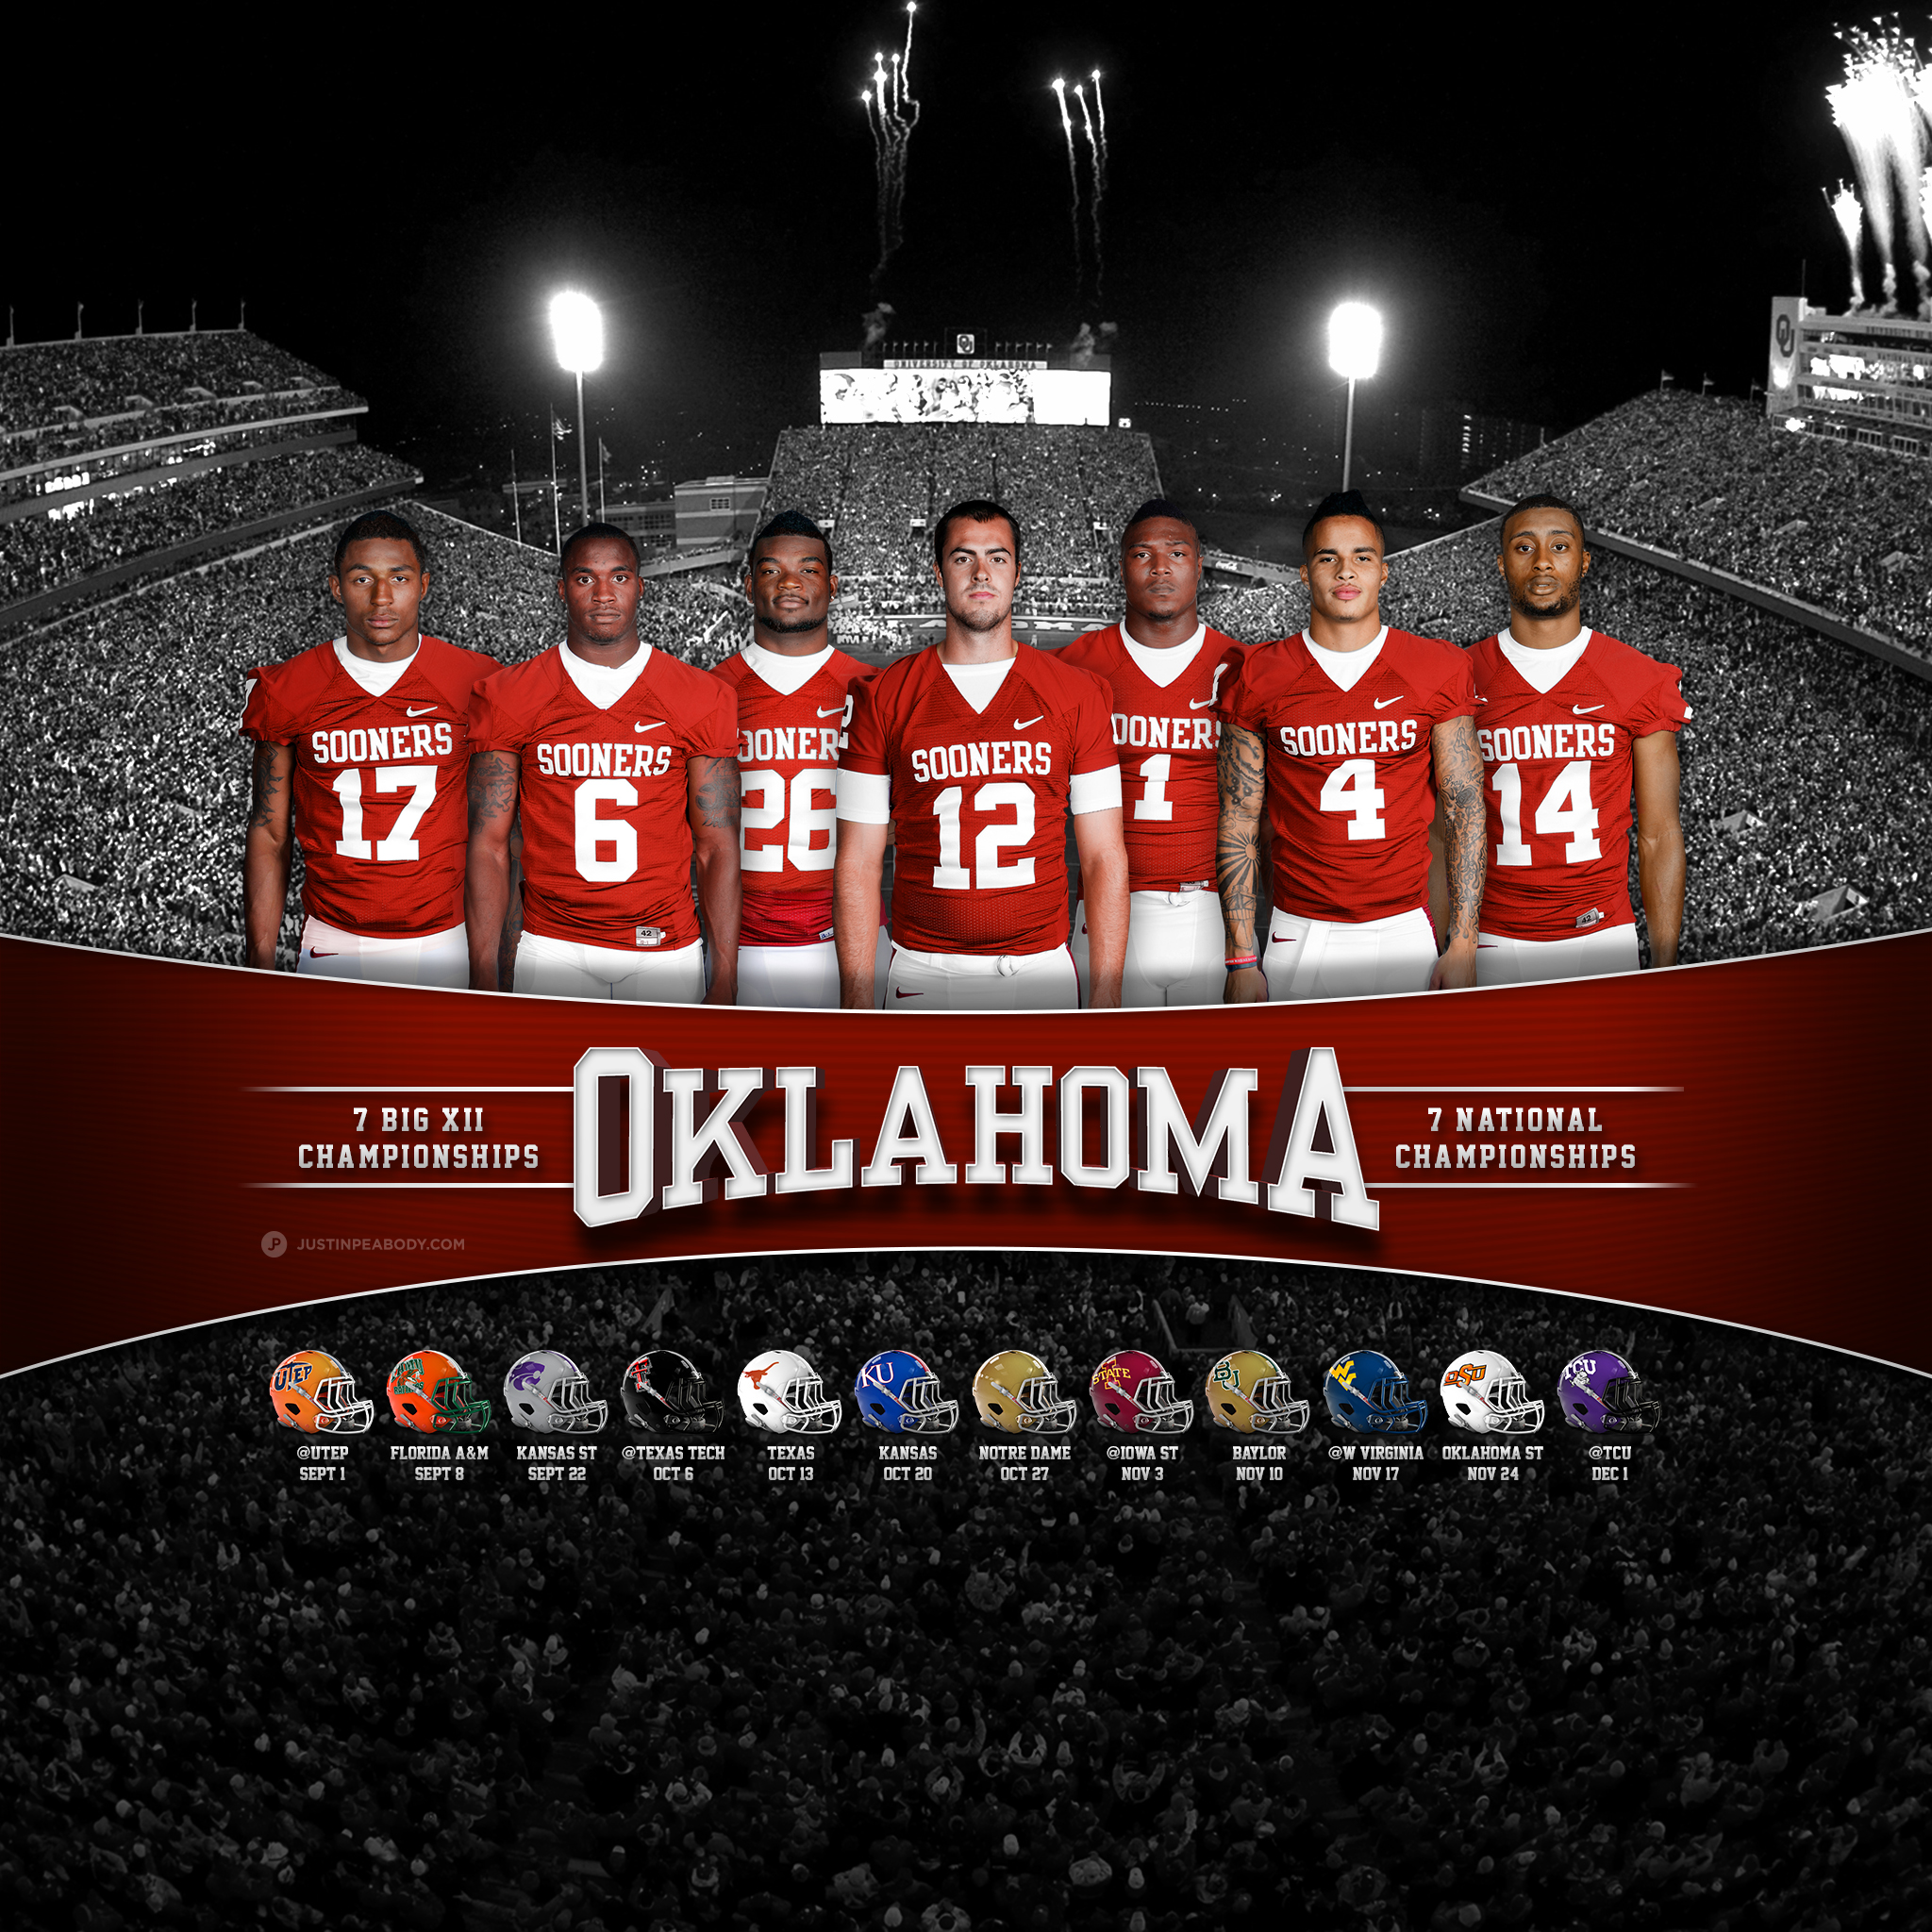 Oklahoma Football Wallpaper Ou football wallpaper 2048x2048